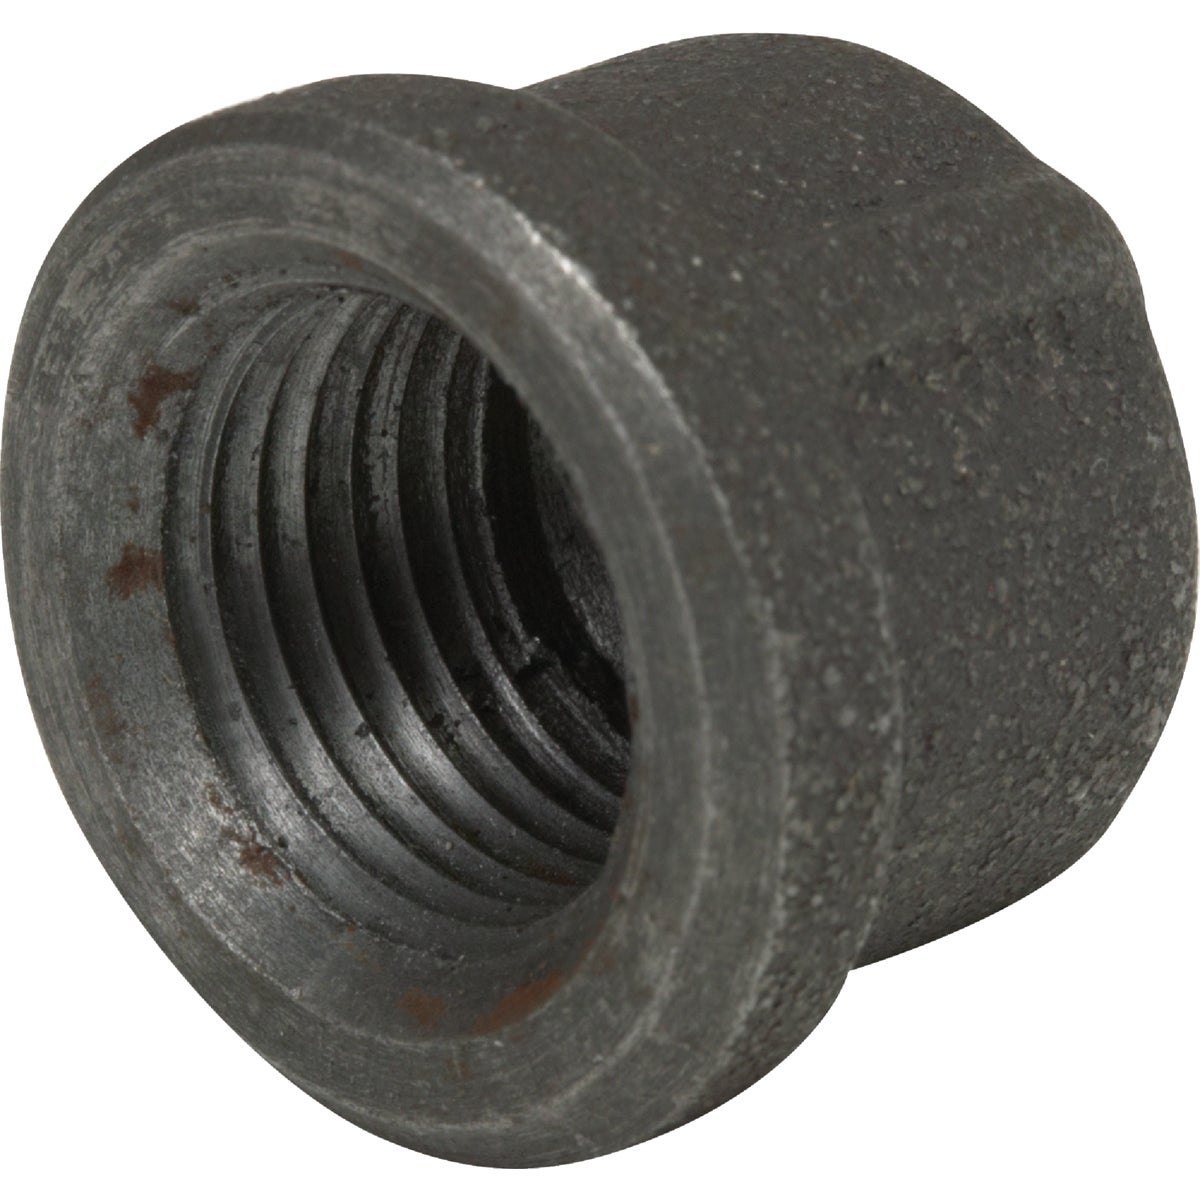 "3/8"" BLK CAP - 8700132155 by Anvil International"